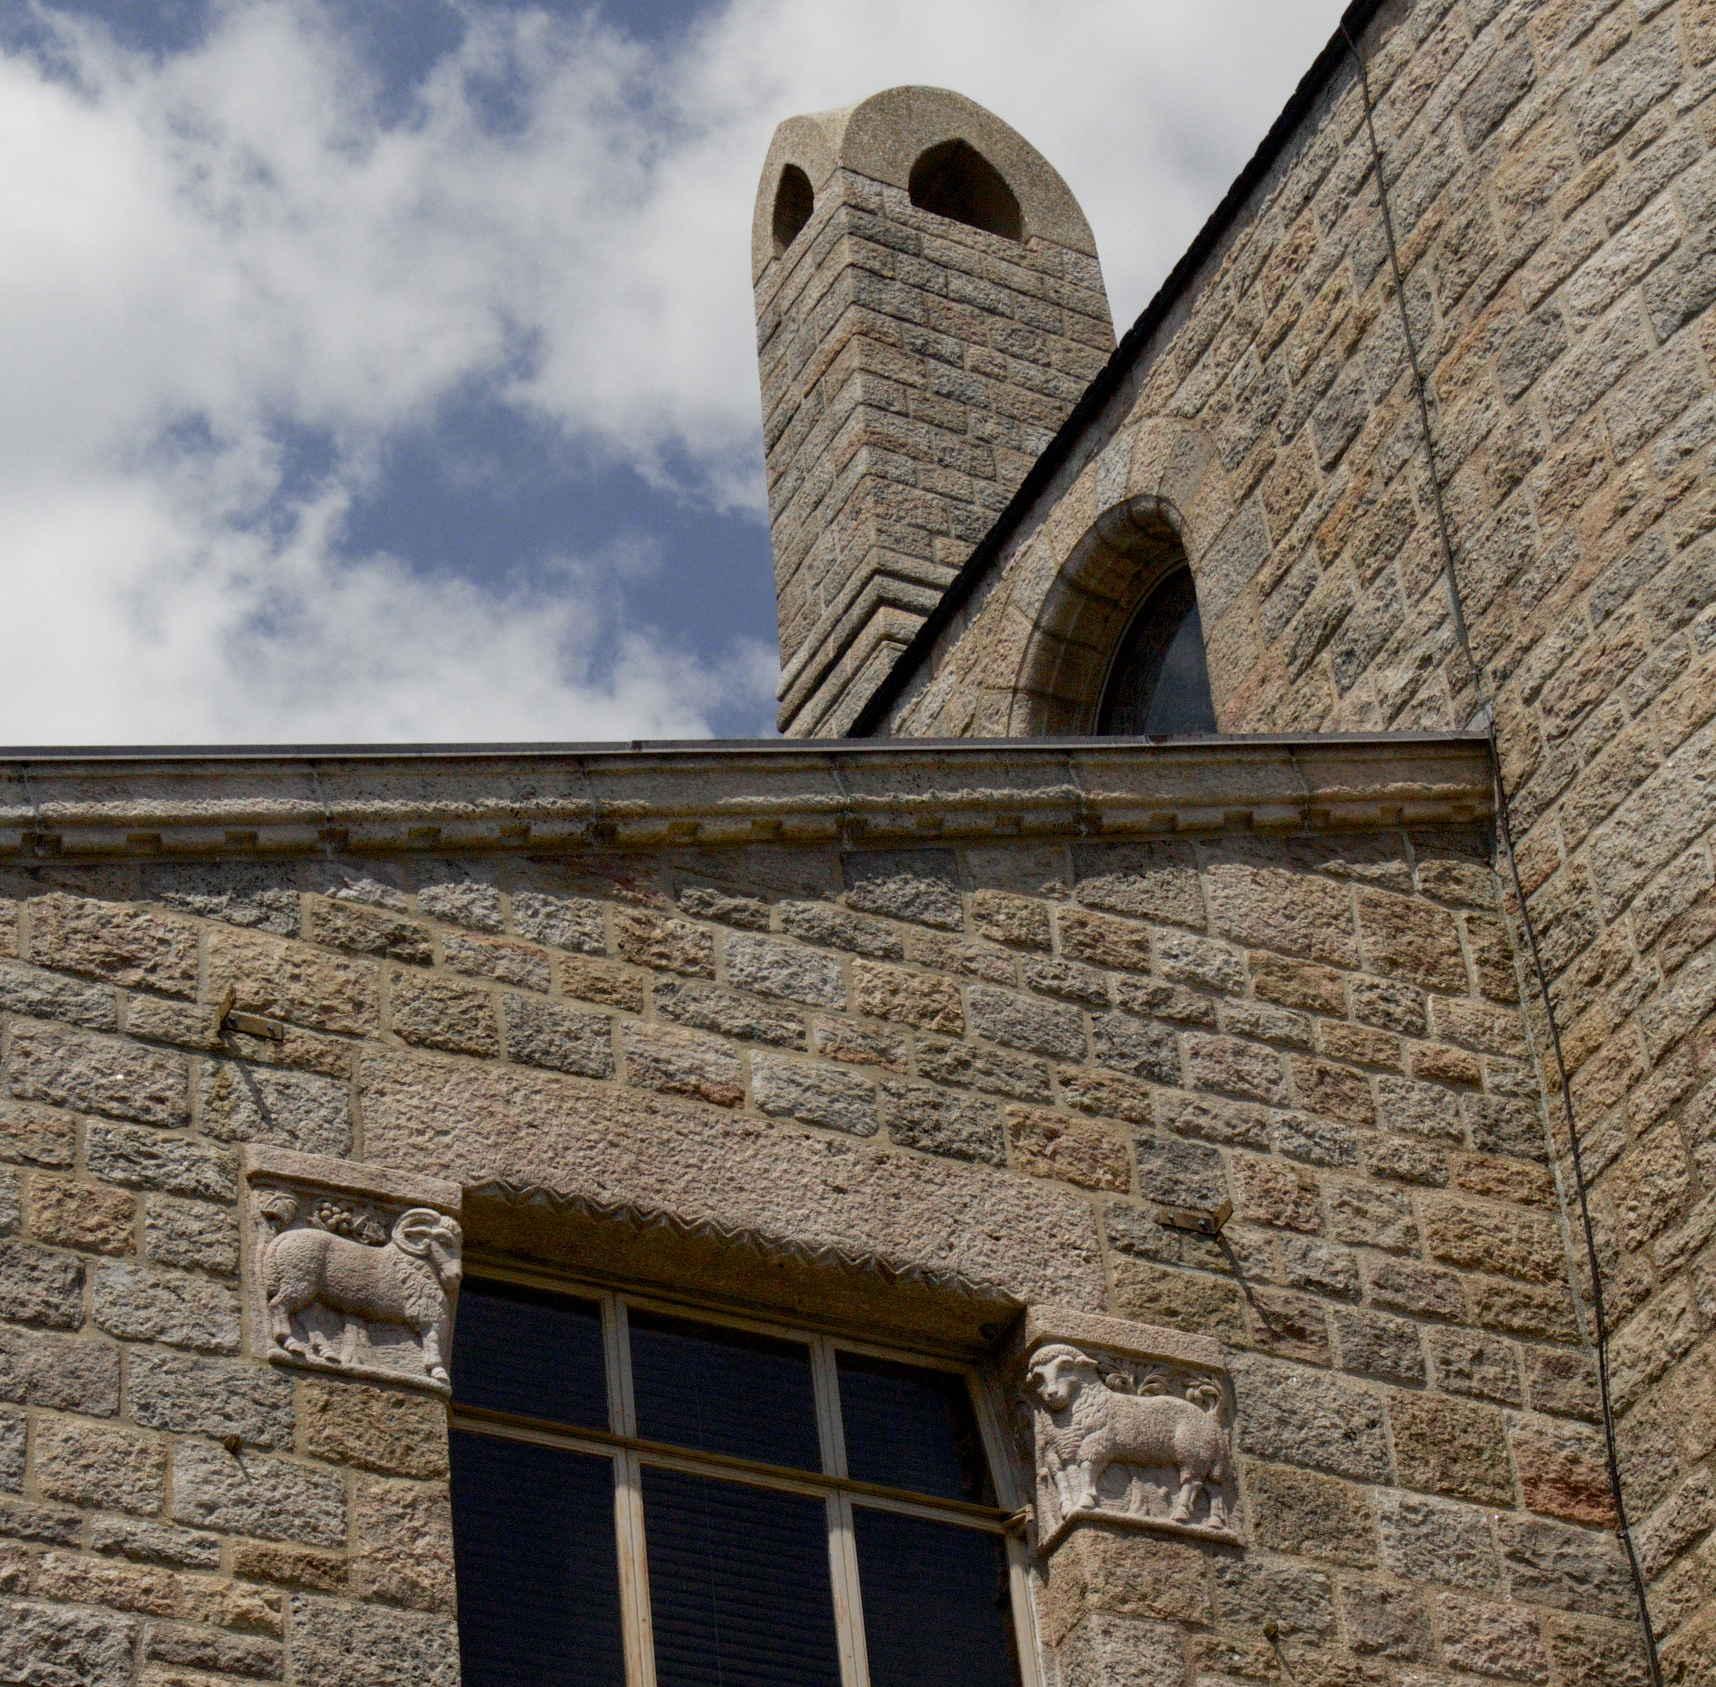 Figure 8: A ram and ewe face each other outside the window of Glencairn's master bedroom on the third floor.